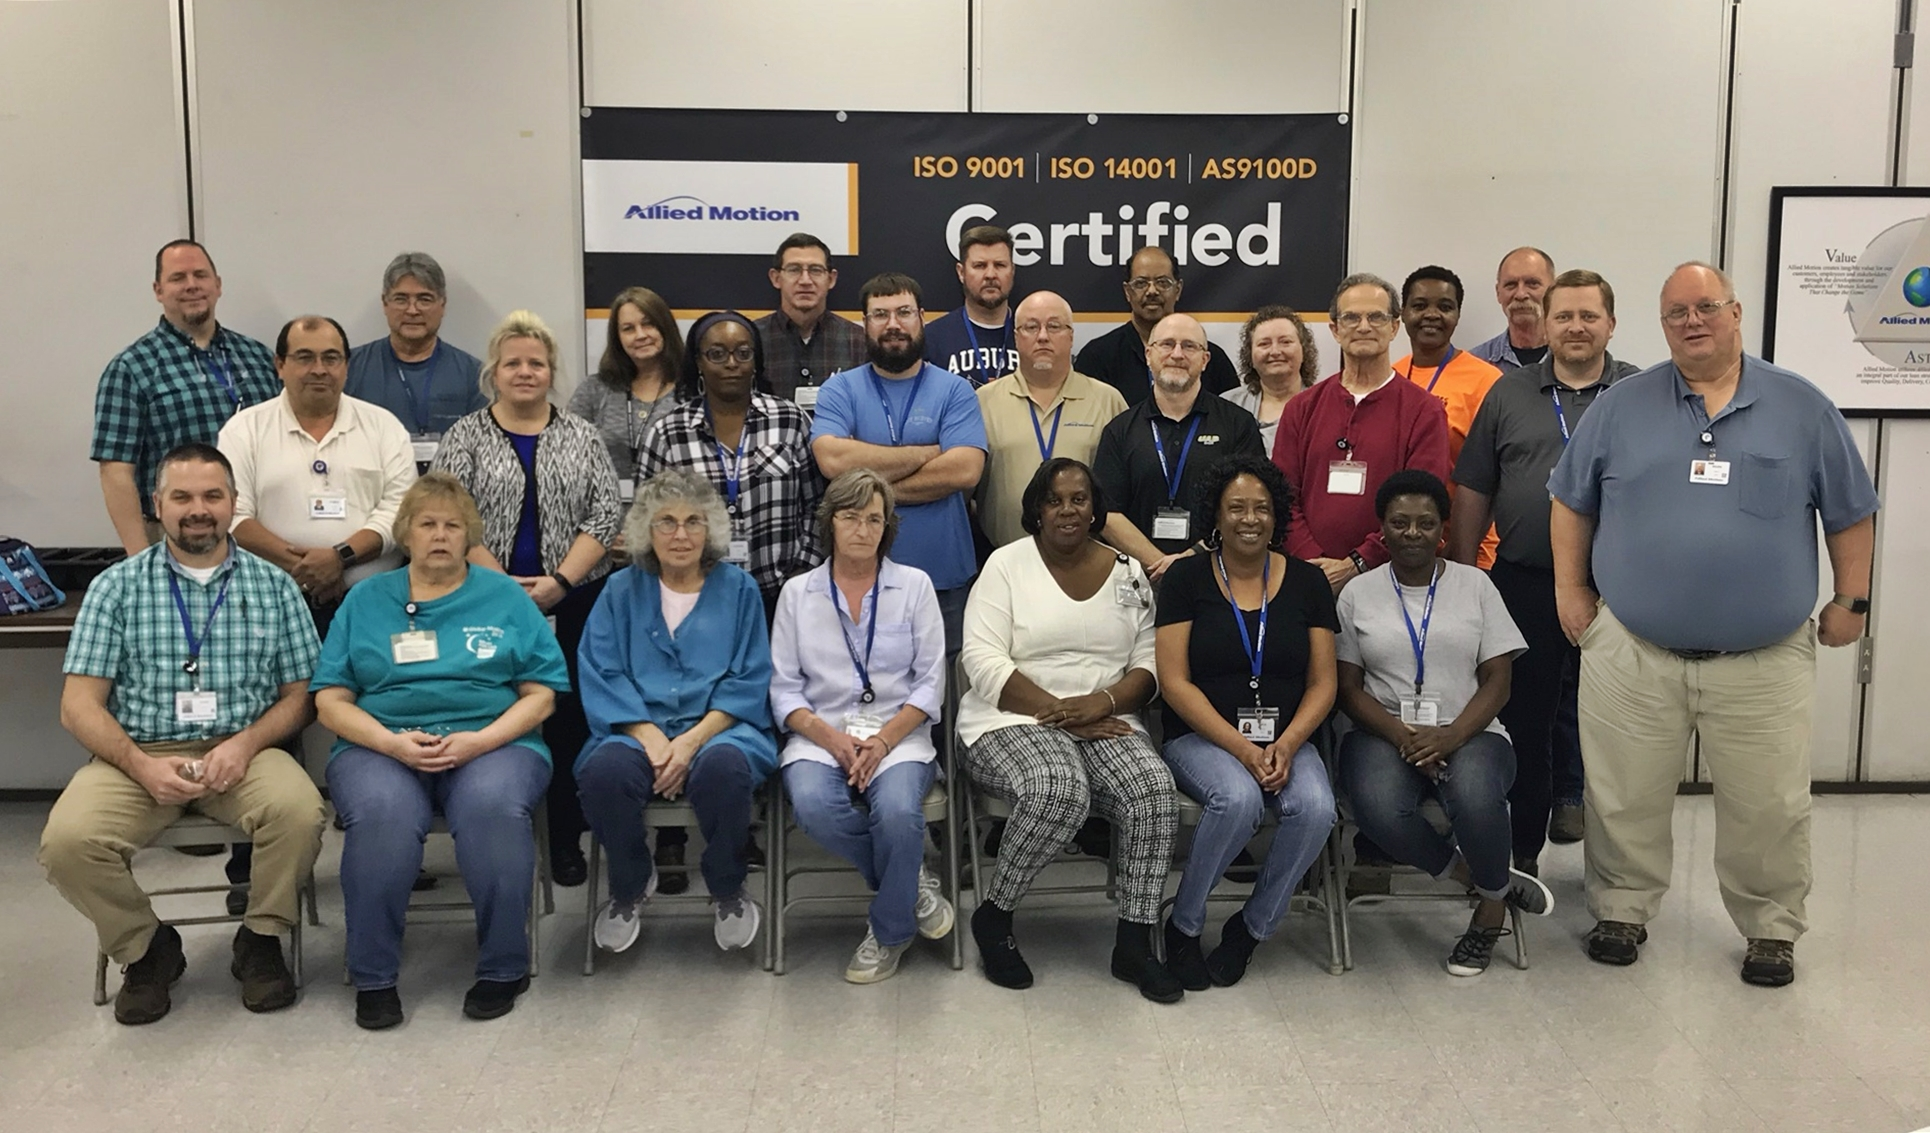 Allied Motion - Celebrating Multiple Quality Certifications